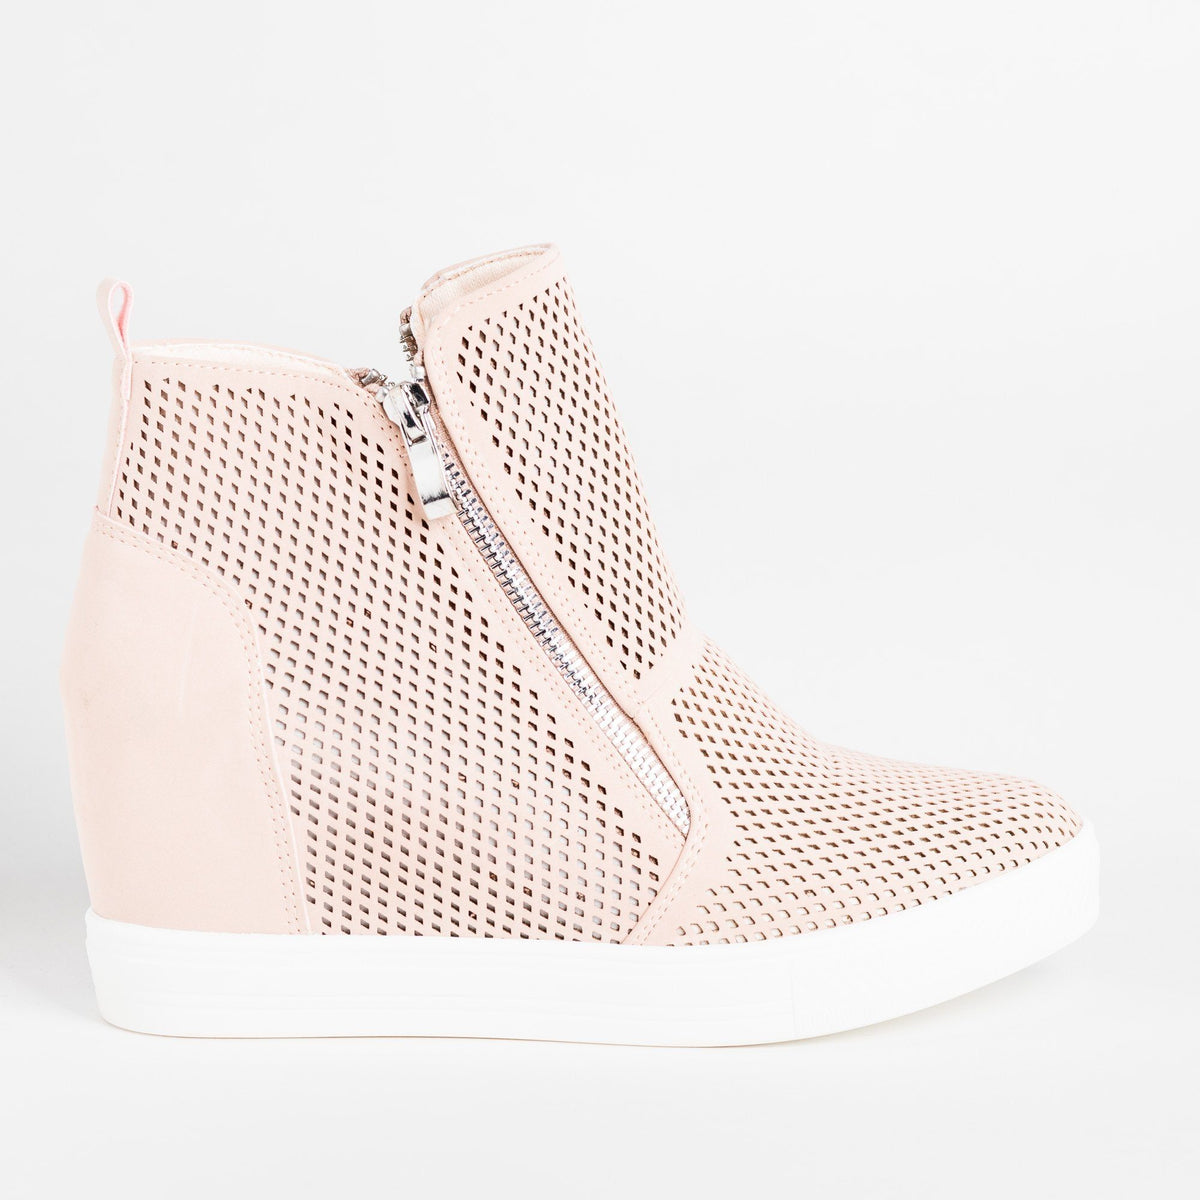 Sneaker Wedges - CCOCCI Shoes Charlotte